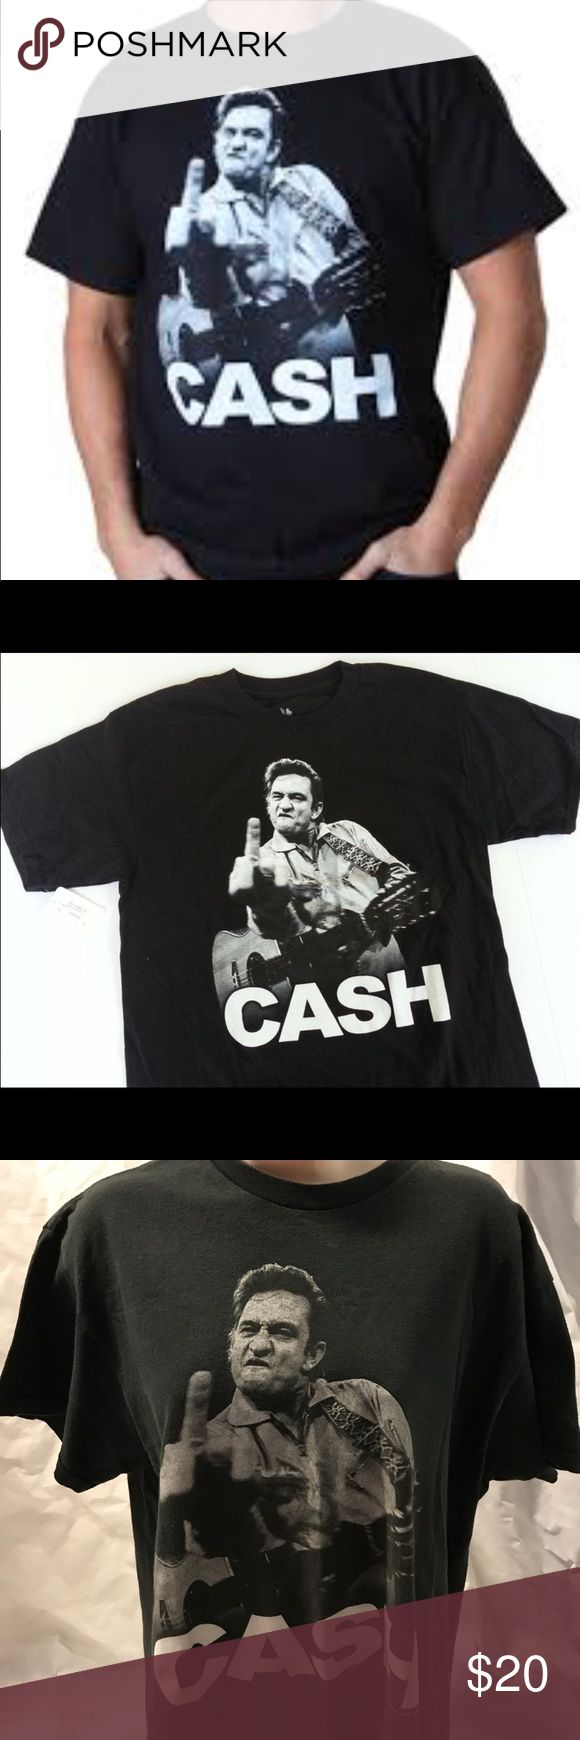 ZION Johnny cash middle finger T-shirt Zion rootswear Johnny cash middle finger size large shirt ZION Shirts Tees - Short Sleeve